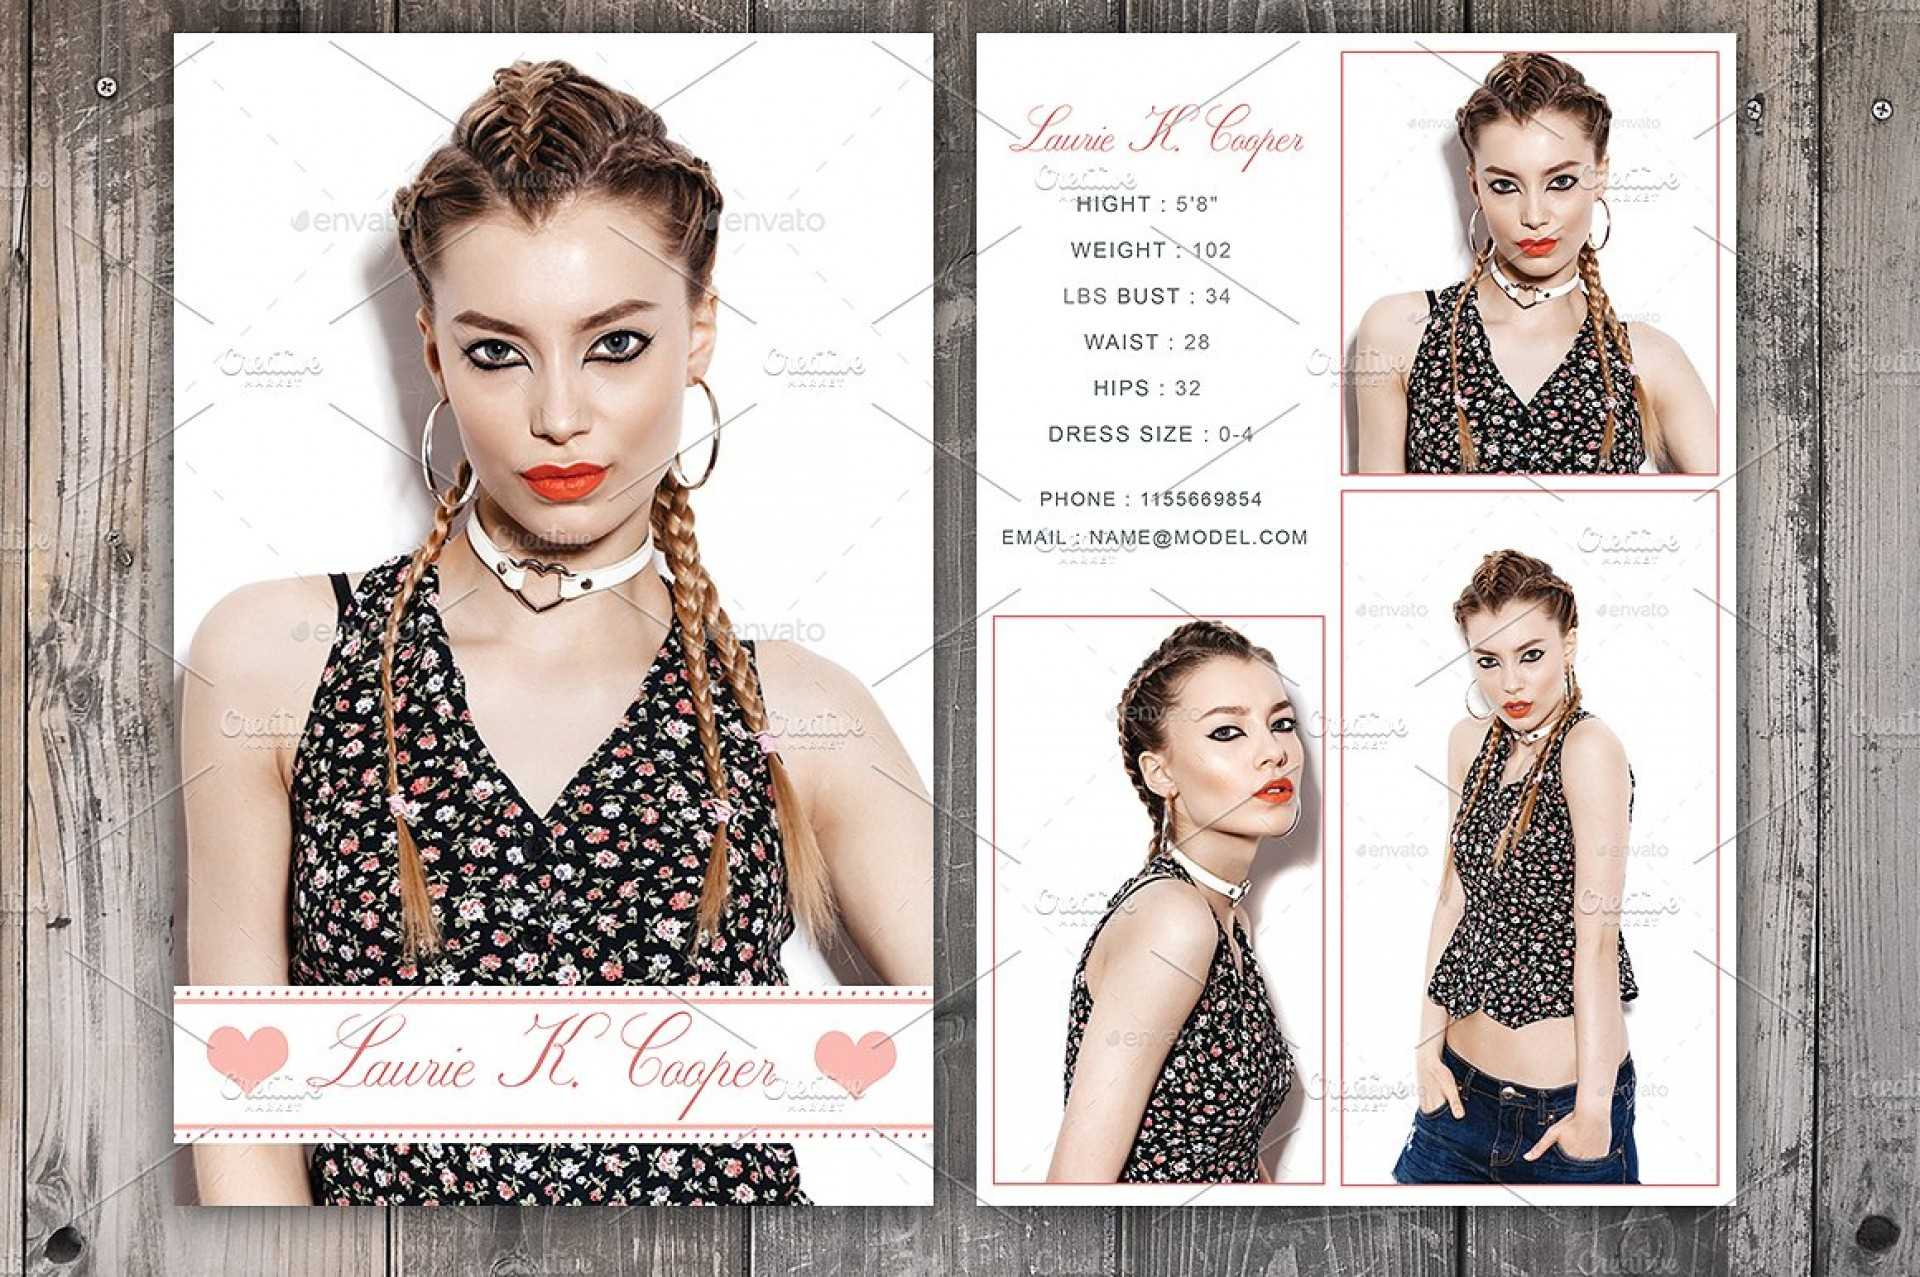 Free Model Comp Card Templates - C Punkt In Free Model Comp Card Template